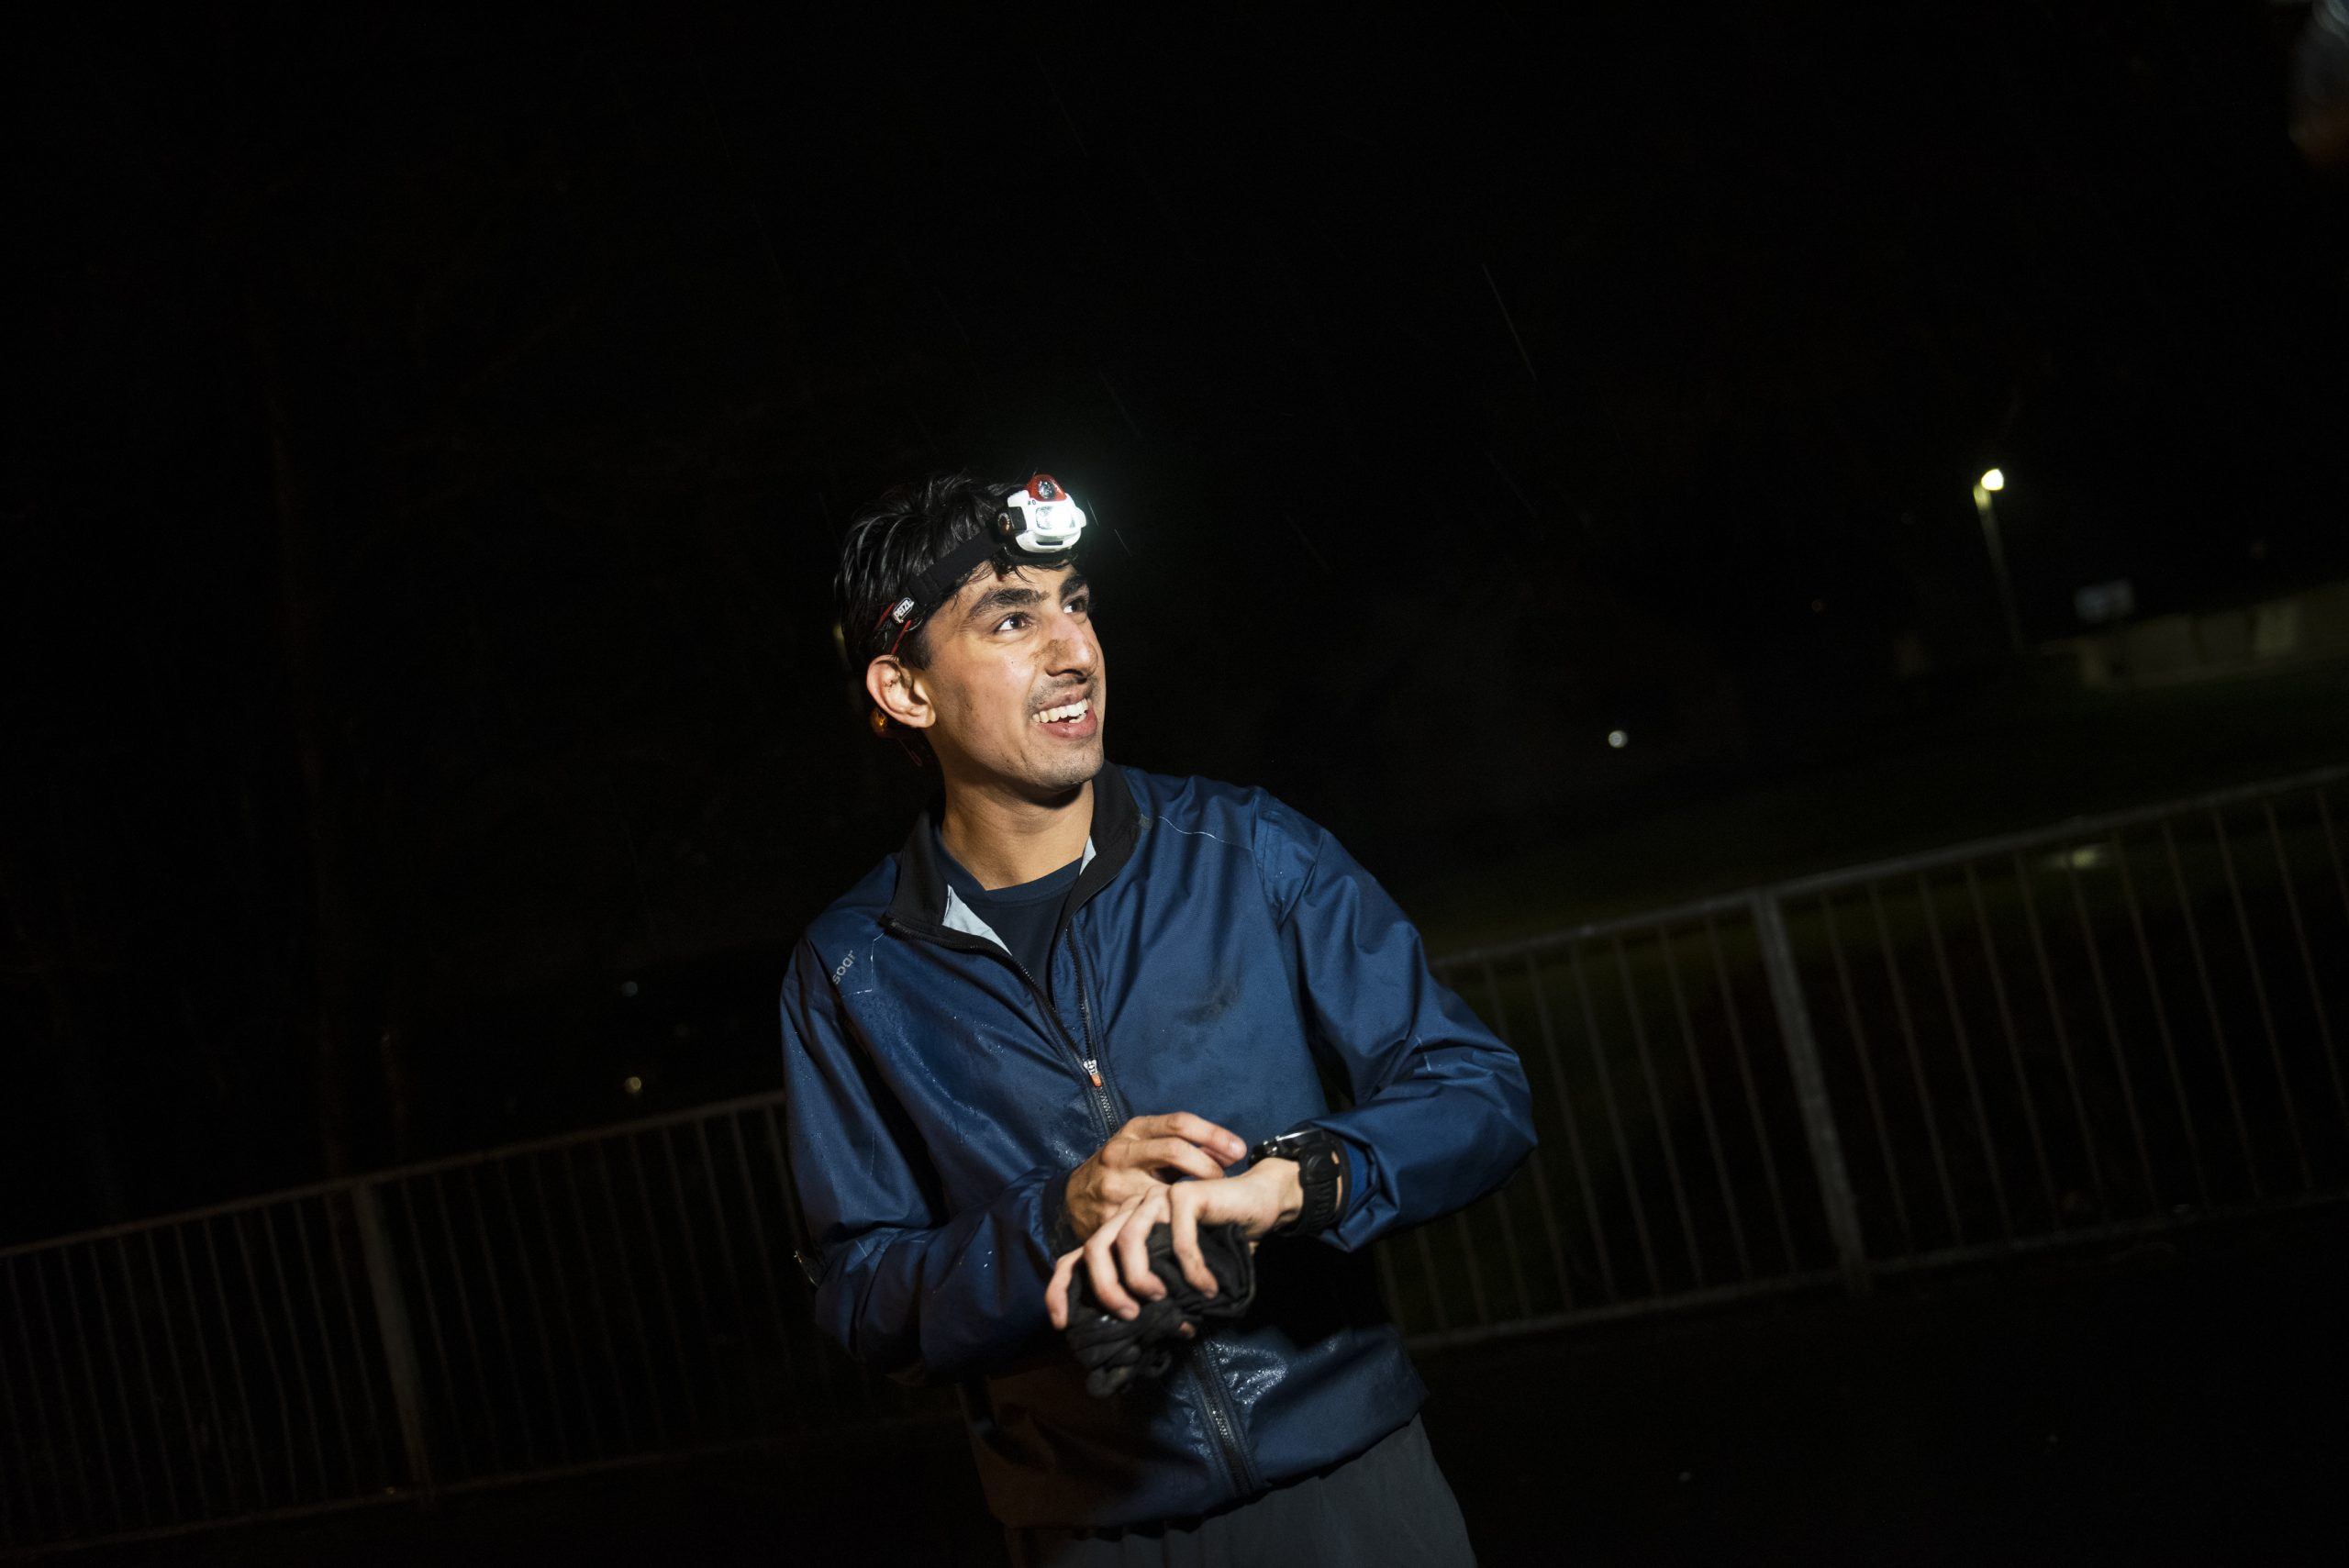 Runner with headtorch checking Garmin